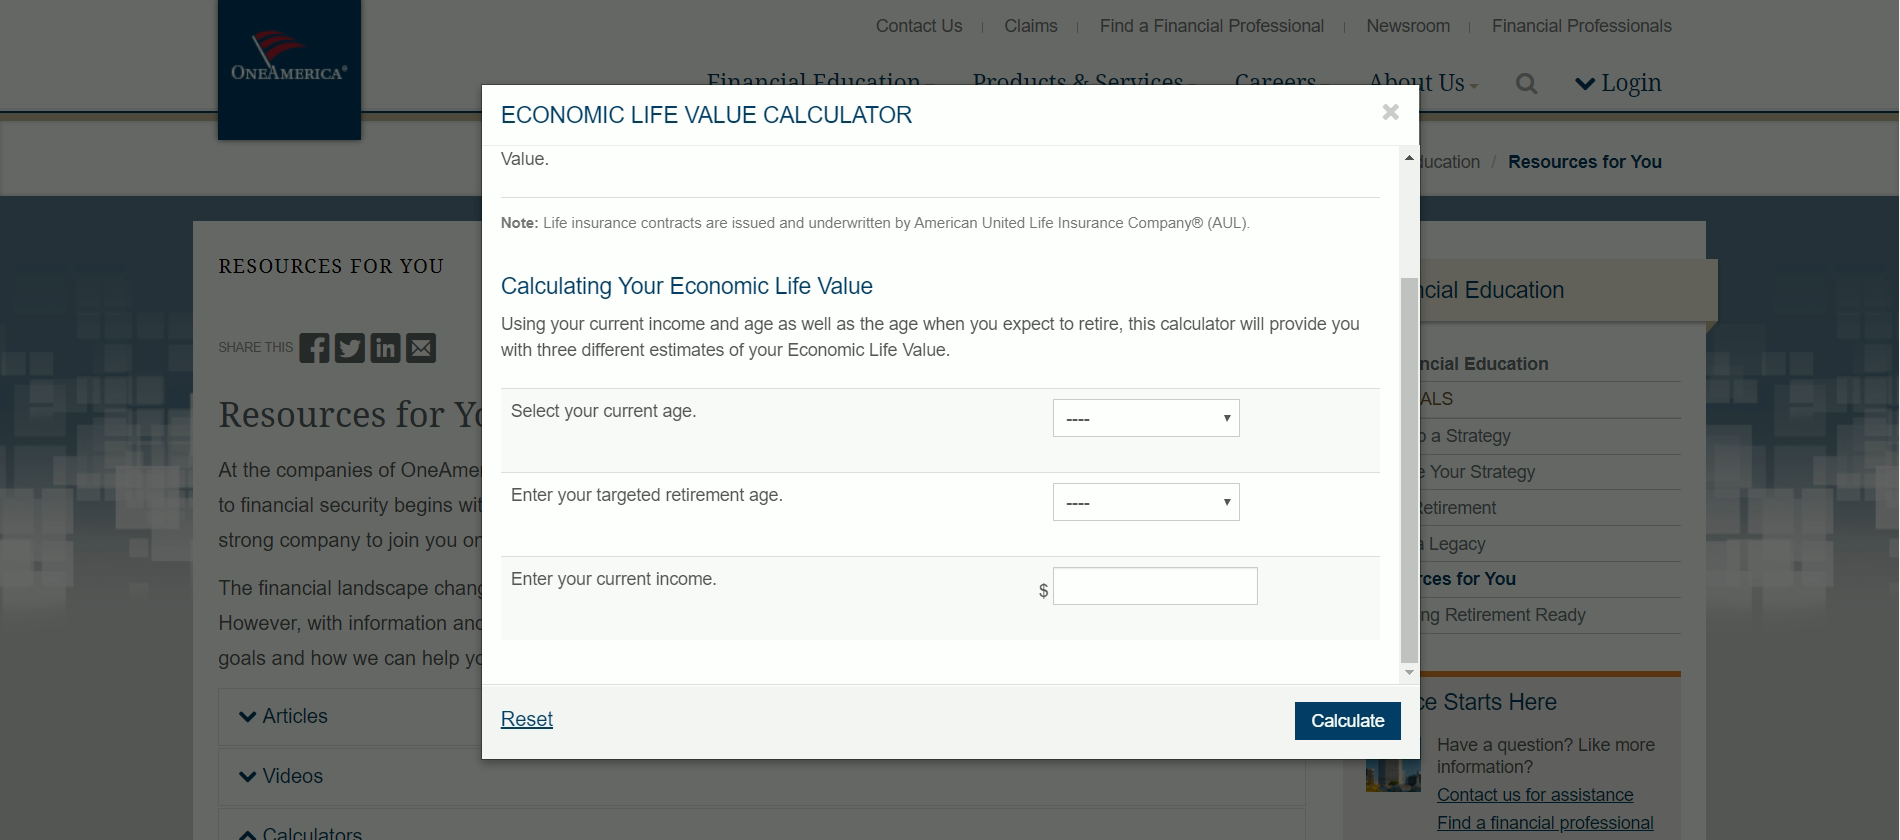 OneAmerica Economic Life Value Calculator